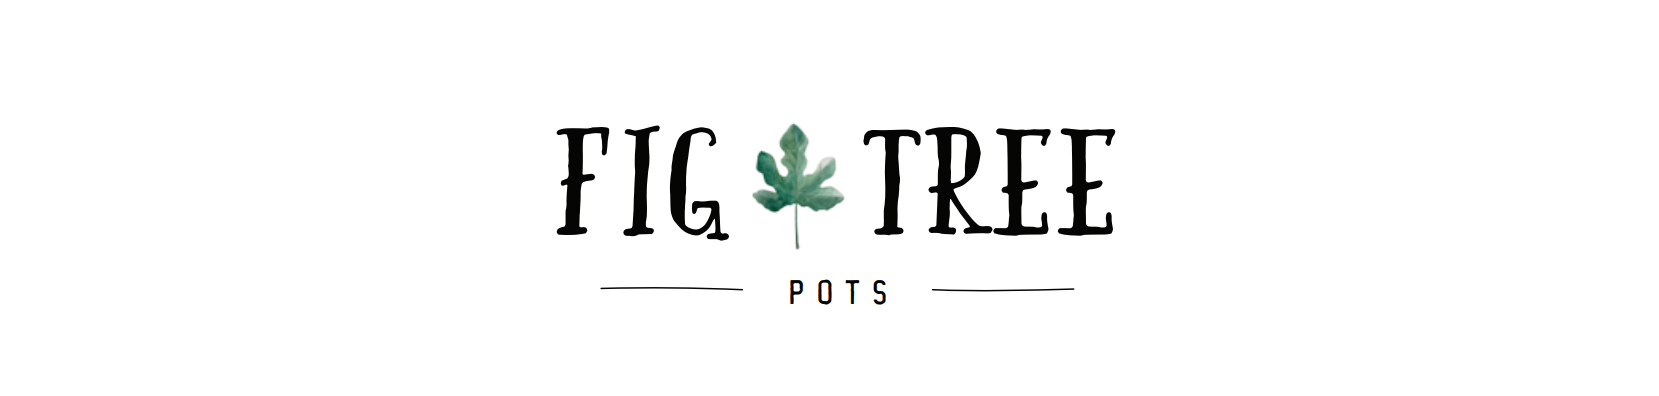 Fig Tree Pots Logo